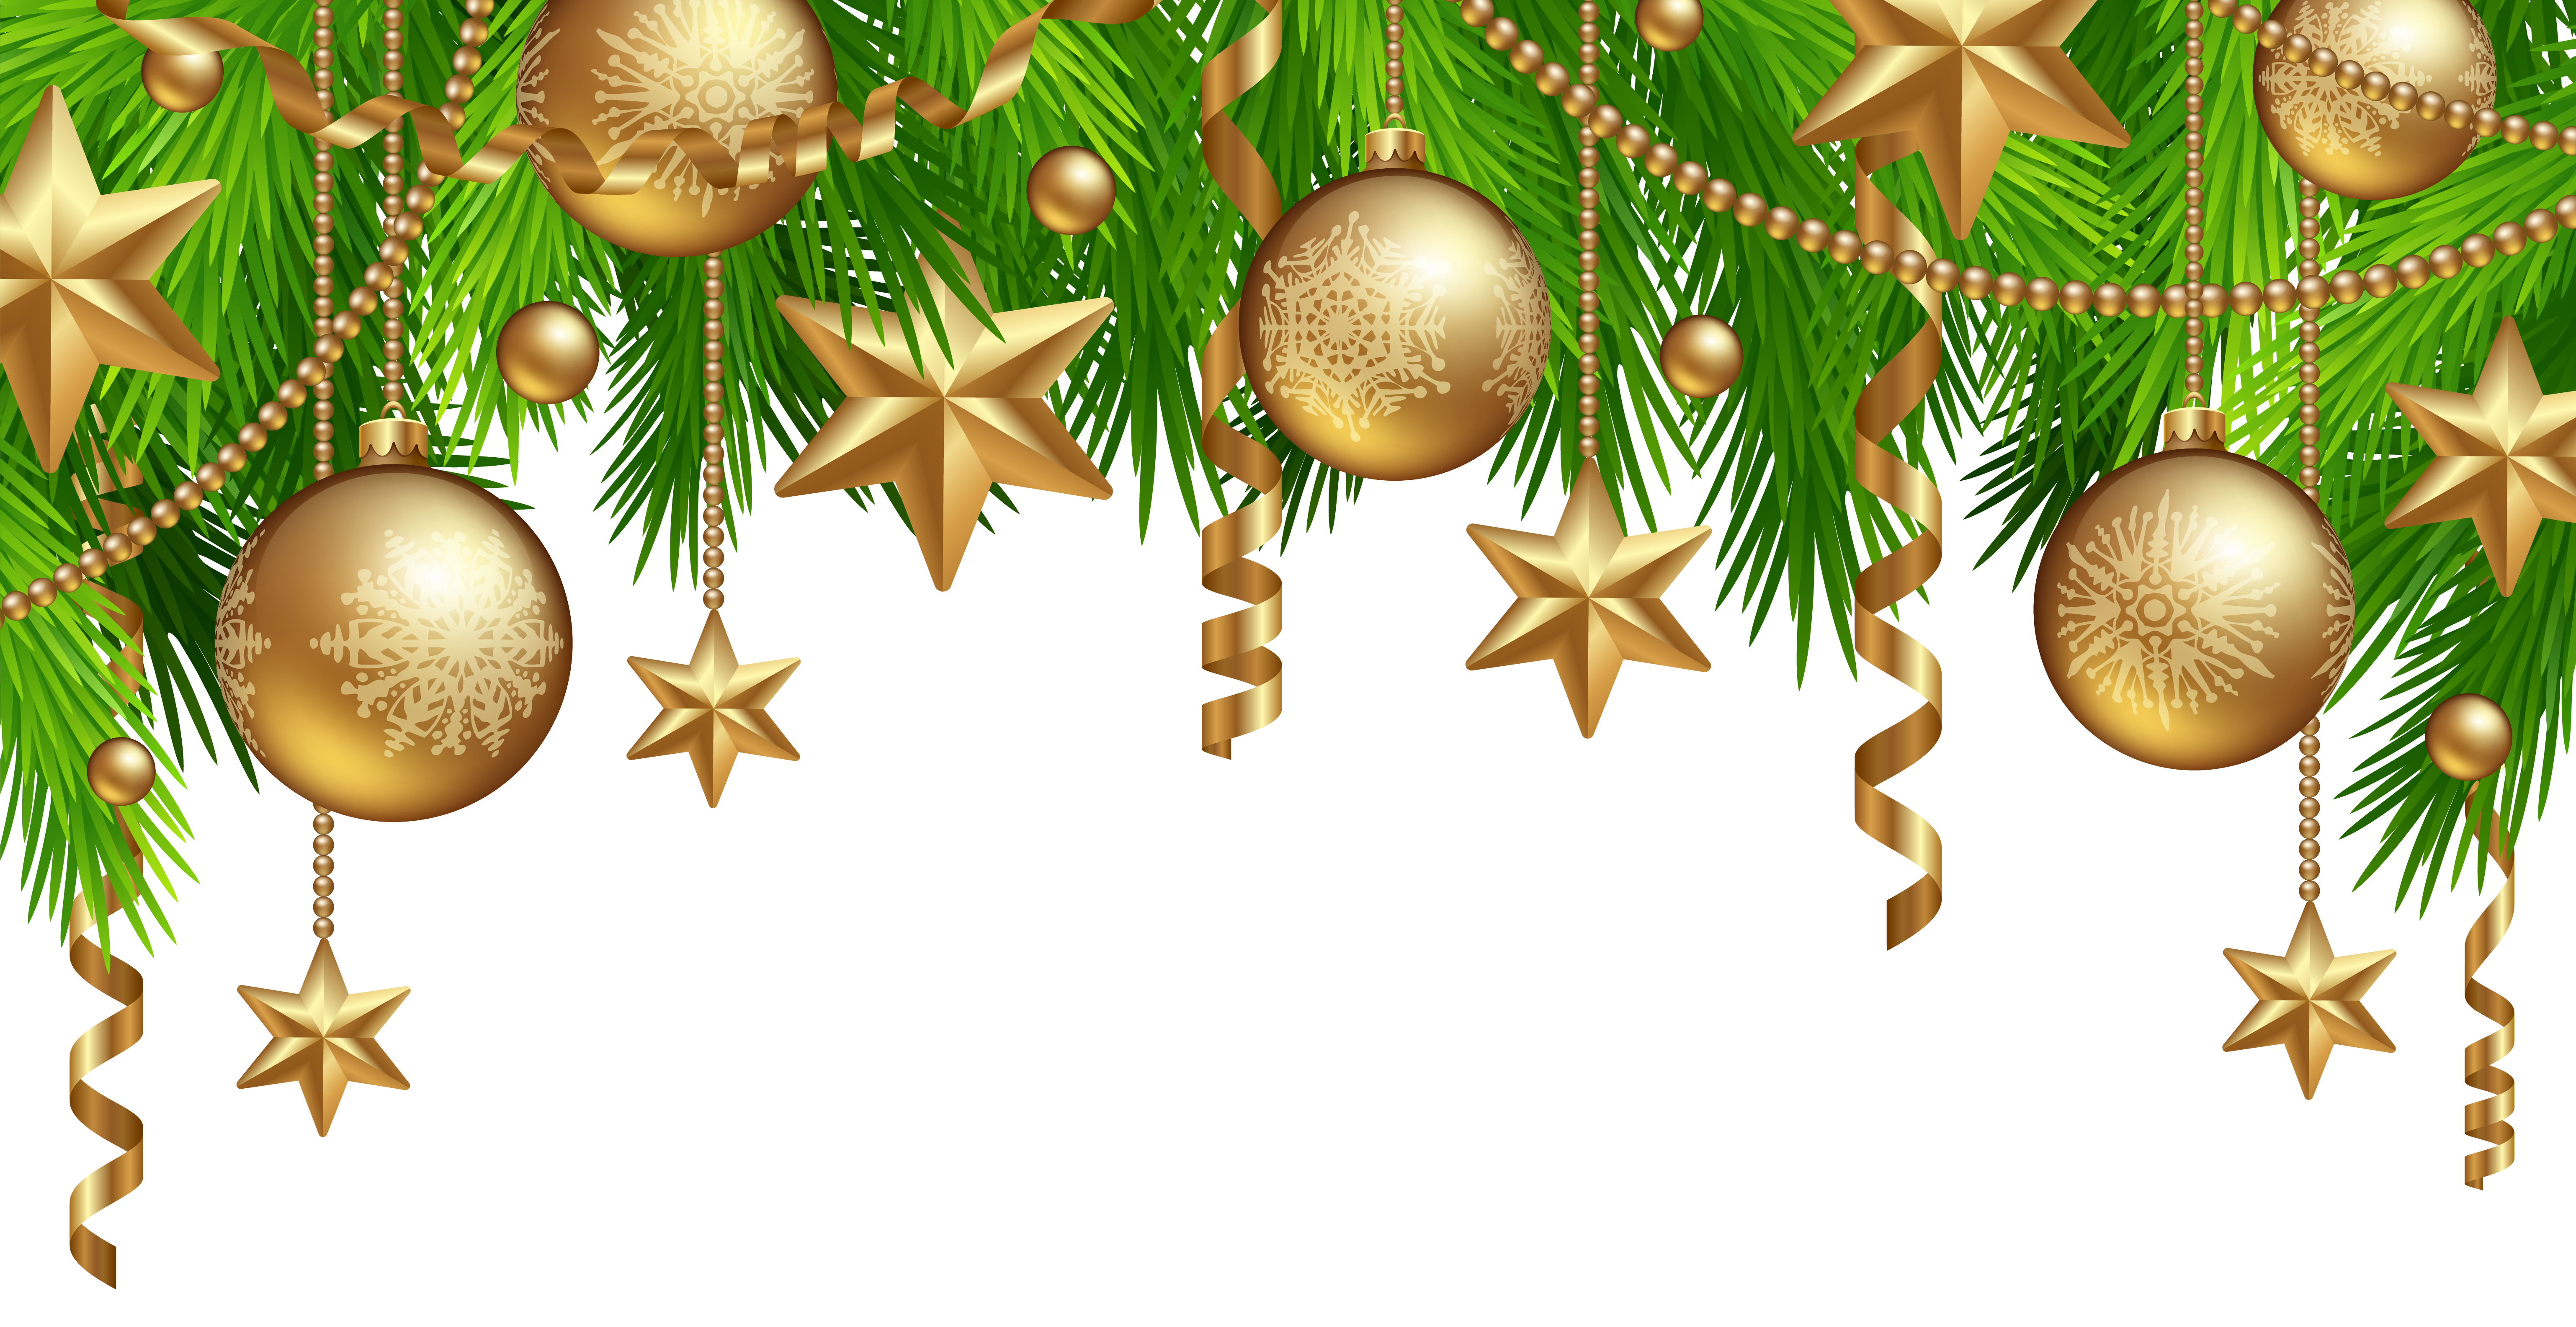 Christmas boarder clipart graphic free library Christmas Border Decor PNG Clipart Image | Gallery Yopriceville ... graphic free library